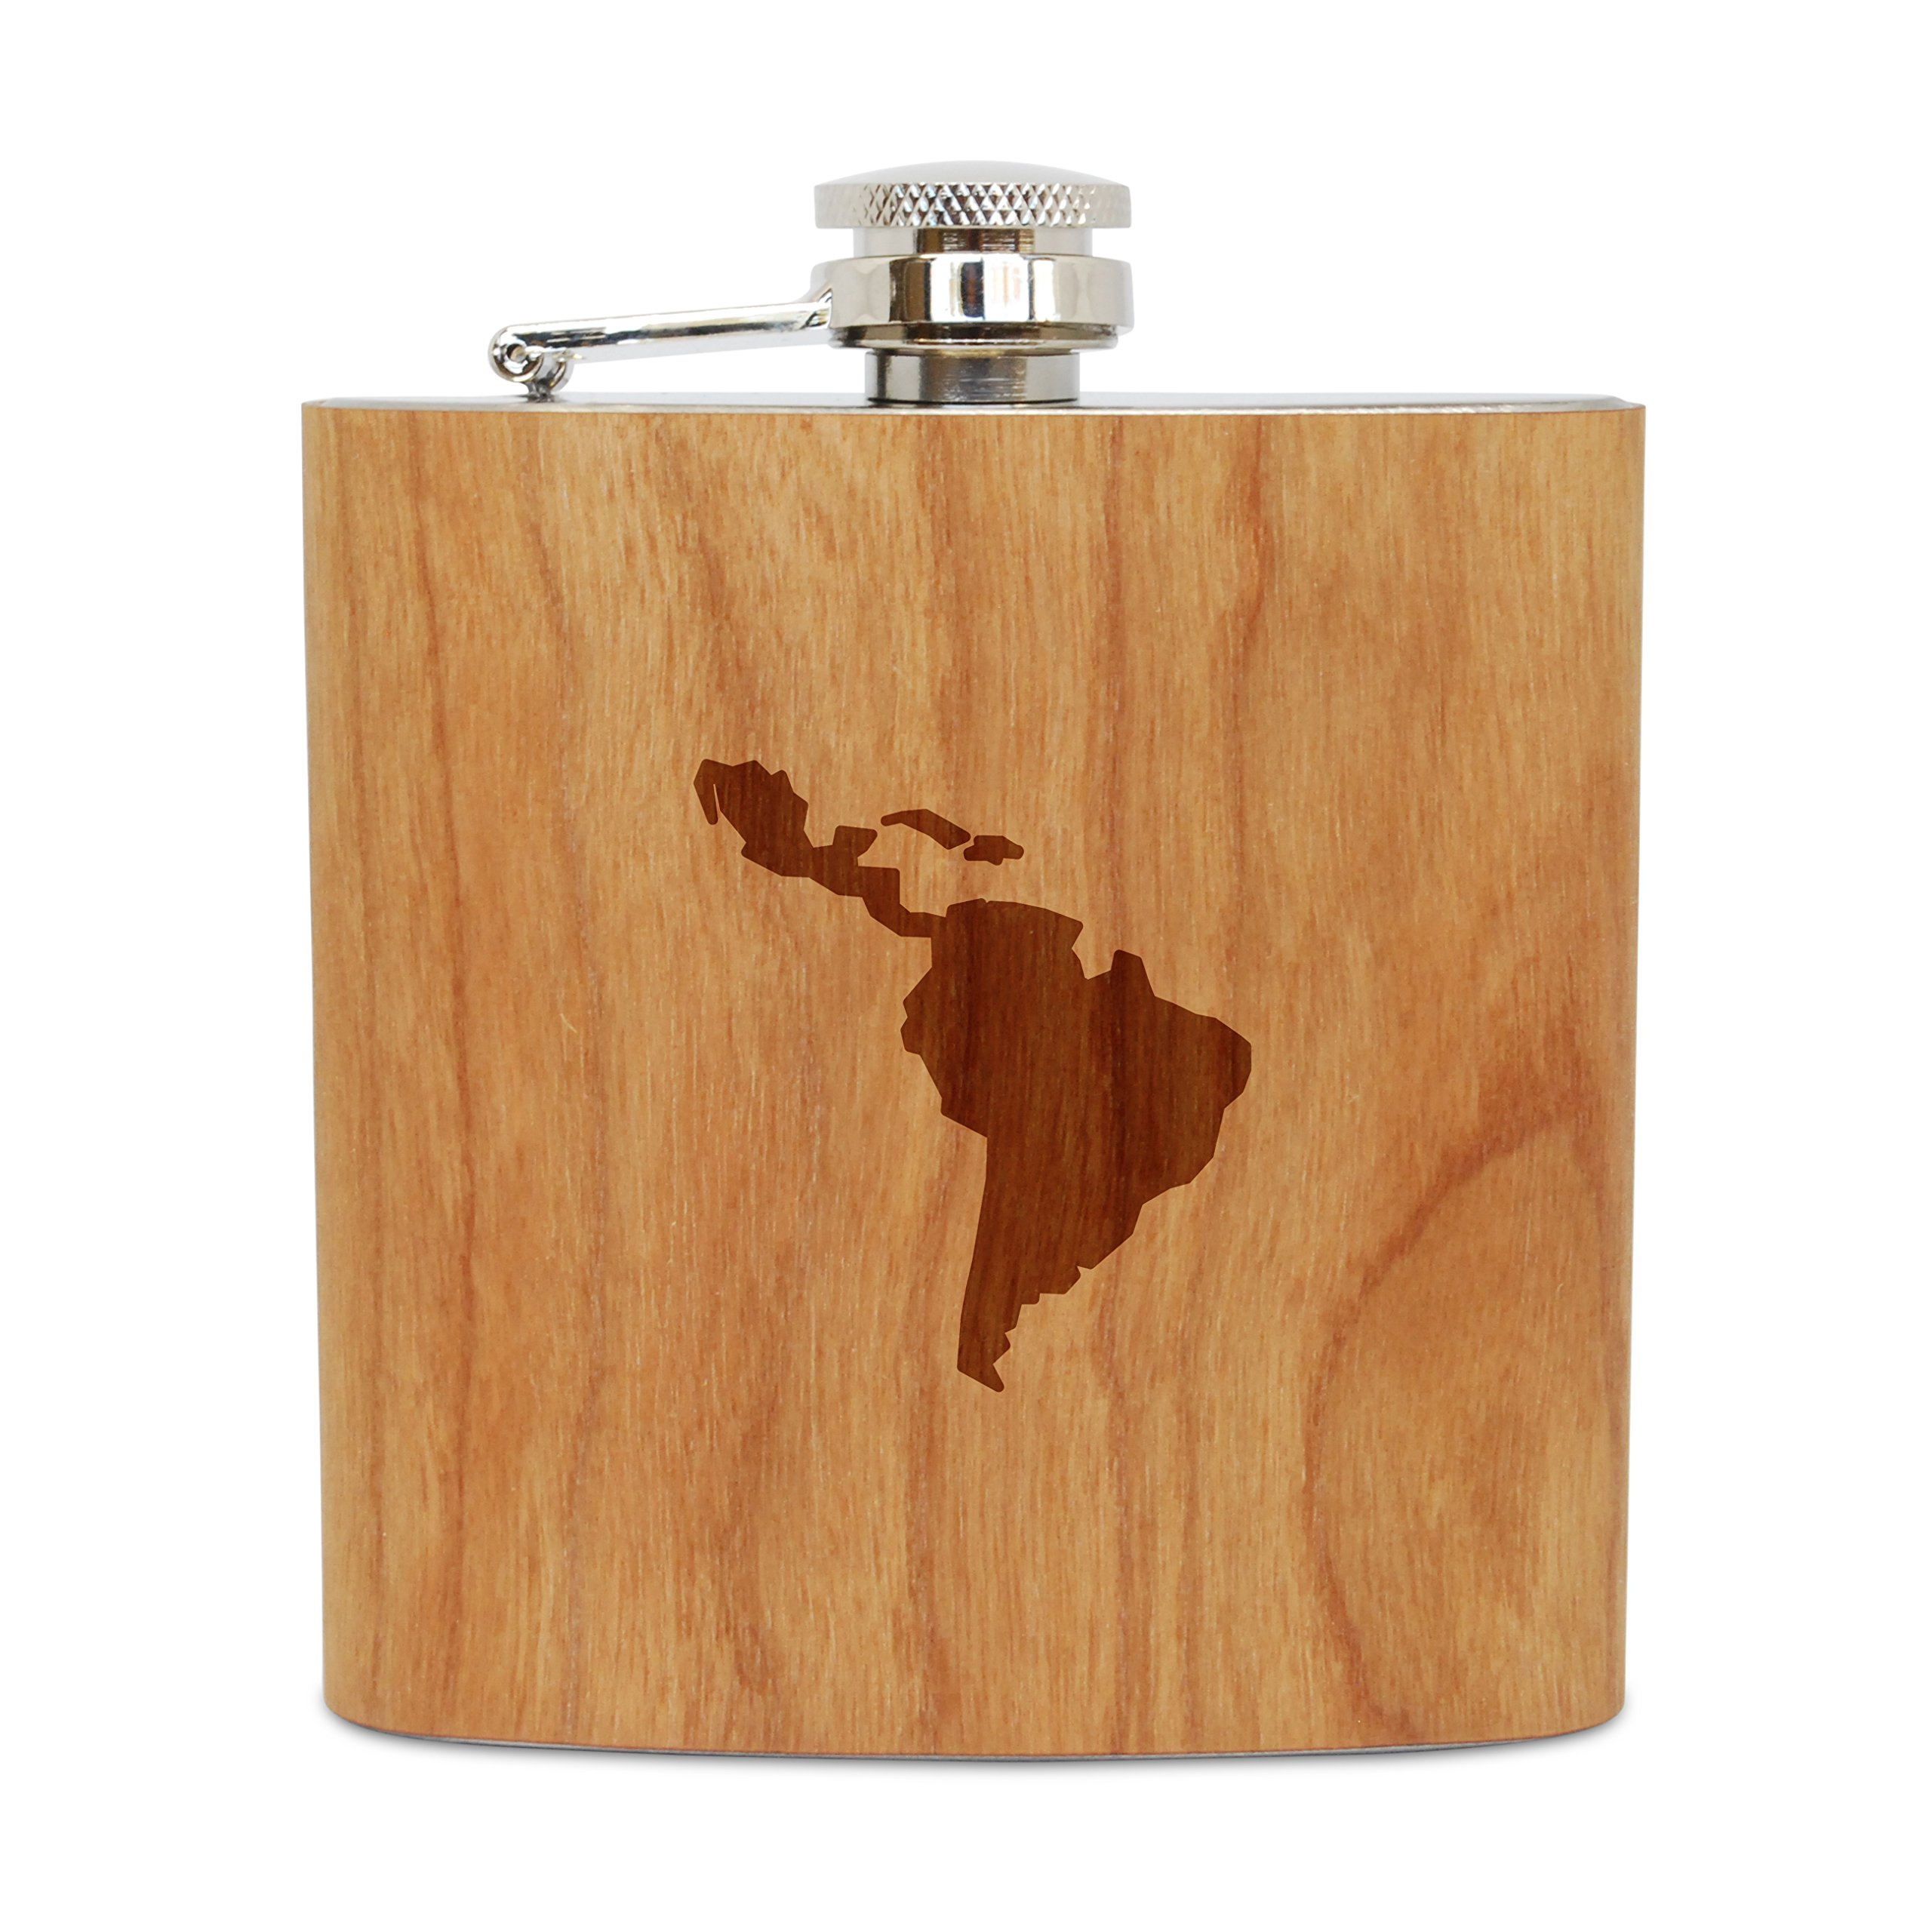 WOODEN ACCESSORIES COMPANY Cherry Wood Flask With Stainless Steel Body - Laser Engraved Flask With Latin America Design - 6 Oz Wood Hip Flask Handmade In USA